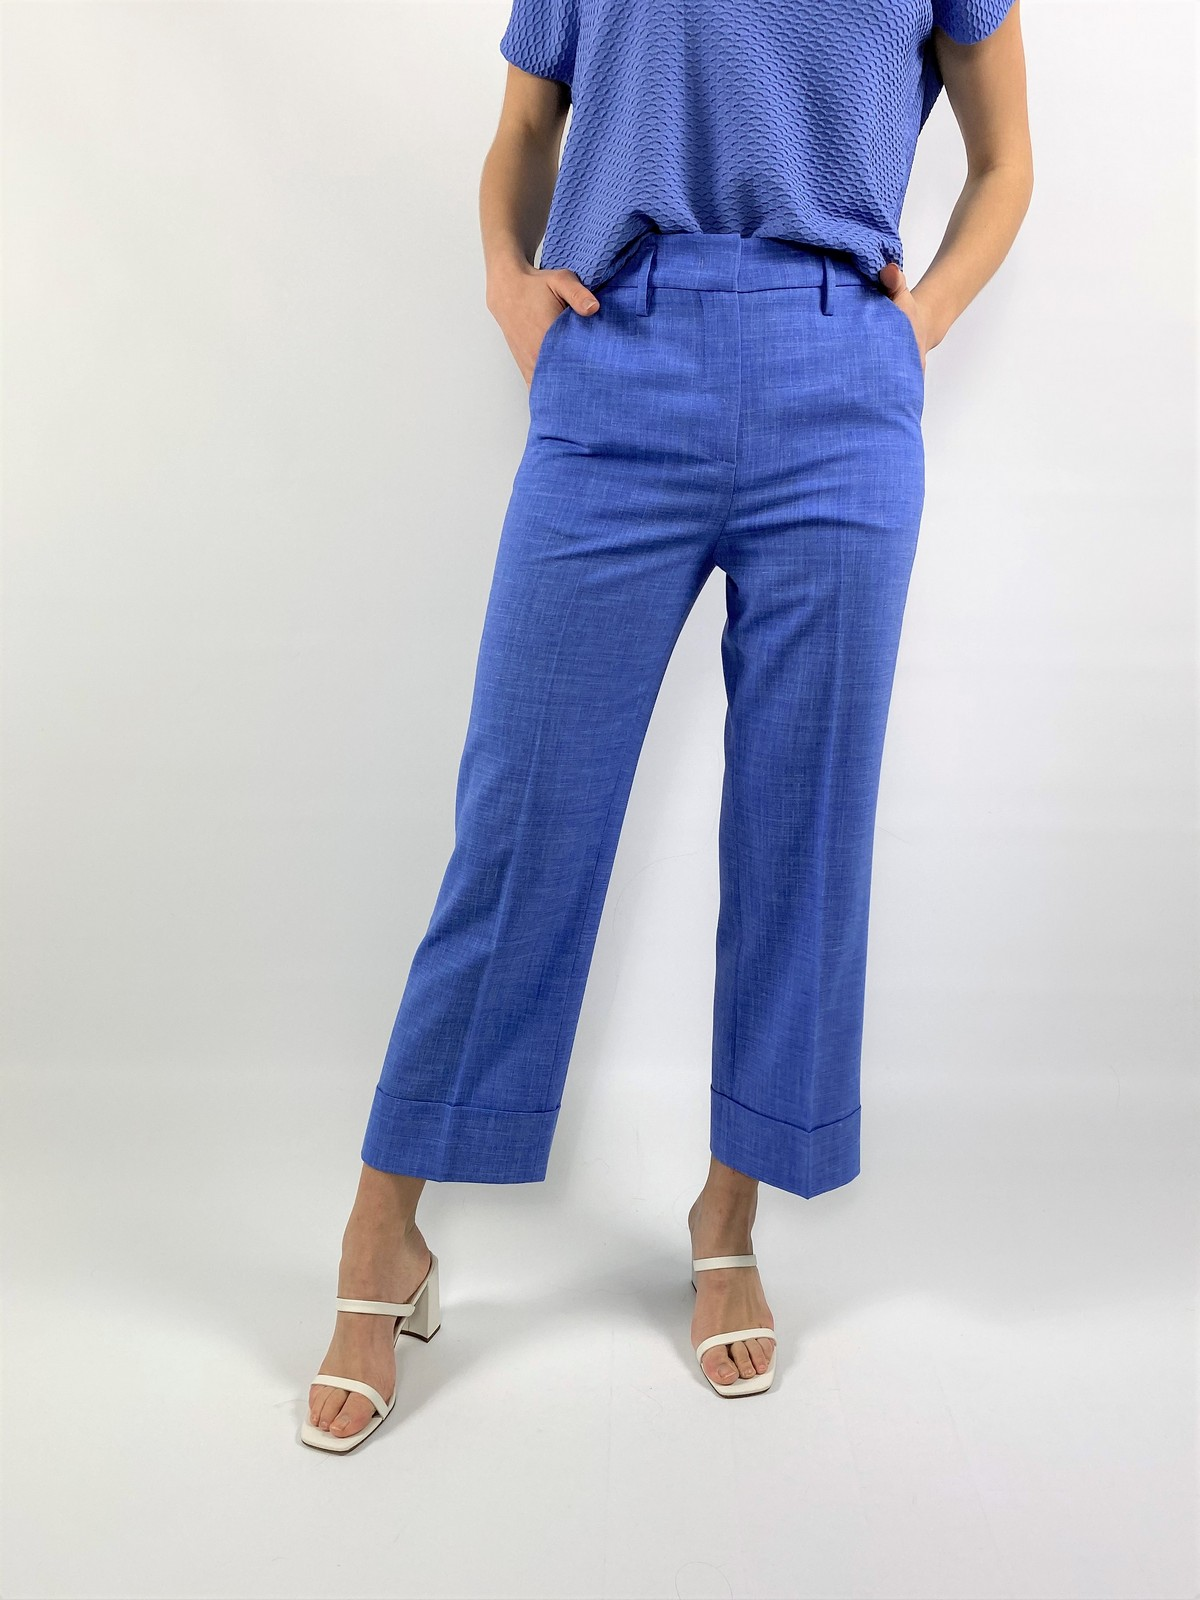 Broek strectch omslag - A2502 - Anneclaire